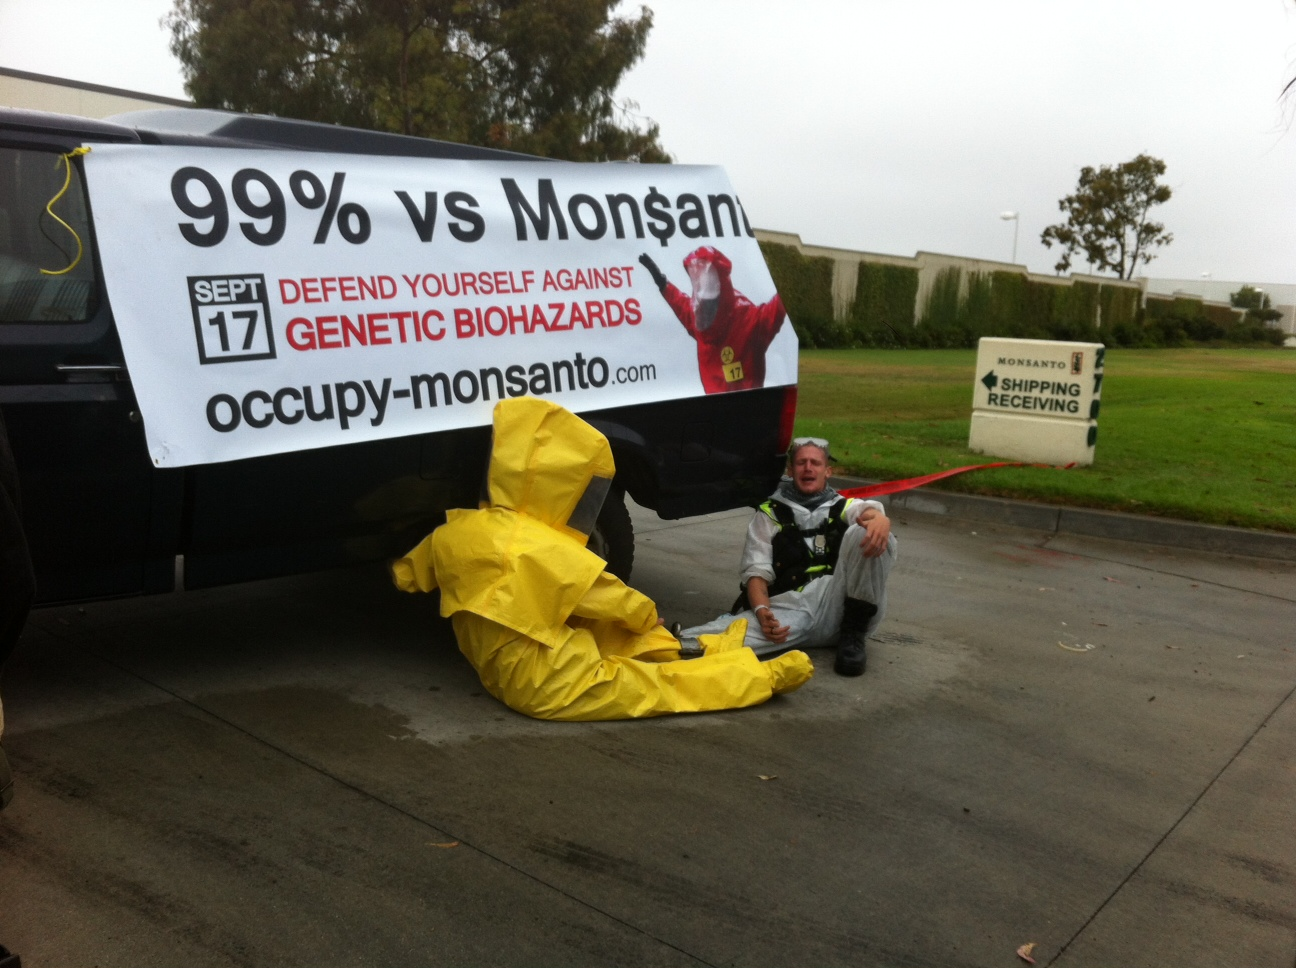 oxnard action photo 2 Photos of GCU Field Agents occupying Monsantos Oxnard facility Seminis Protest Oxnard Occupy Monsanto GMO Seeds GCU Direct Action Decontamination Event CA